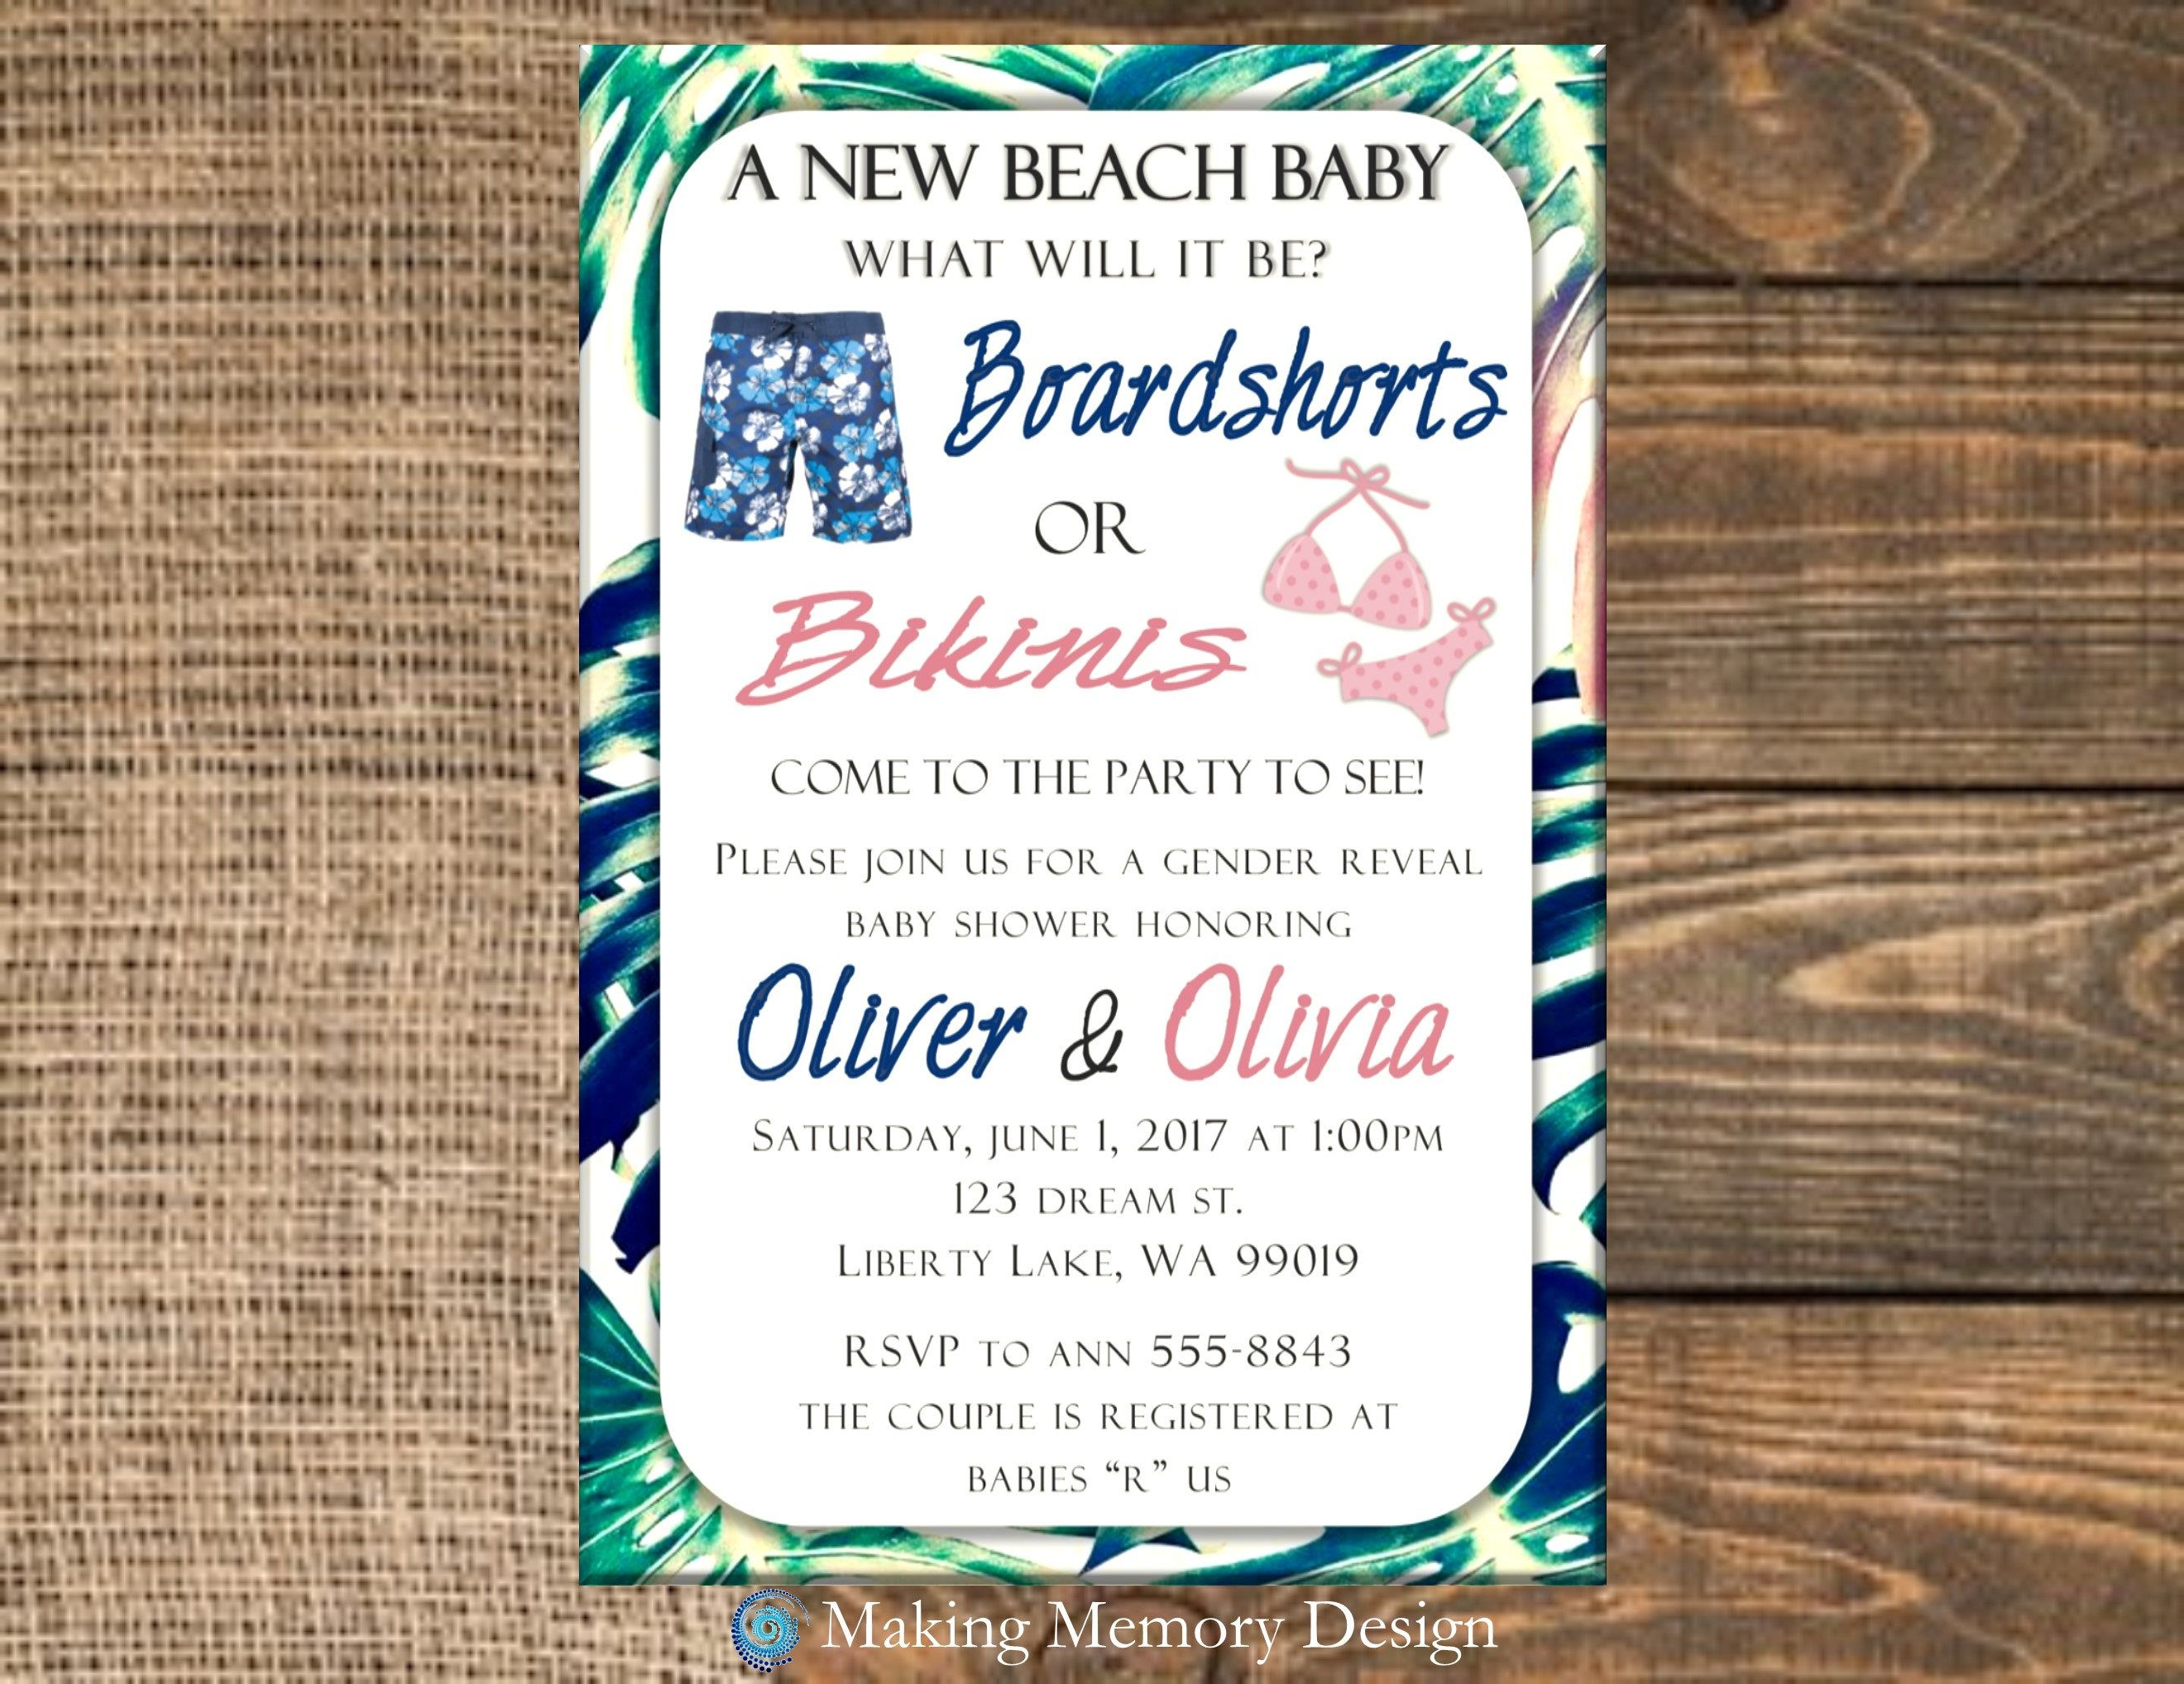 Boardshorts or Bikinis Gender Reveal Baby Shower Invitation by